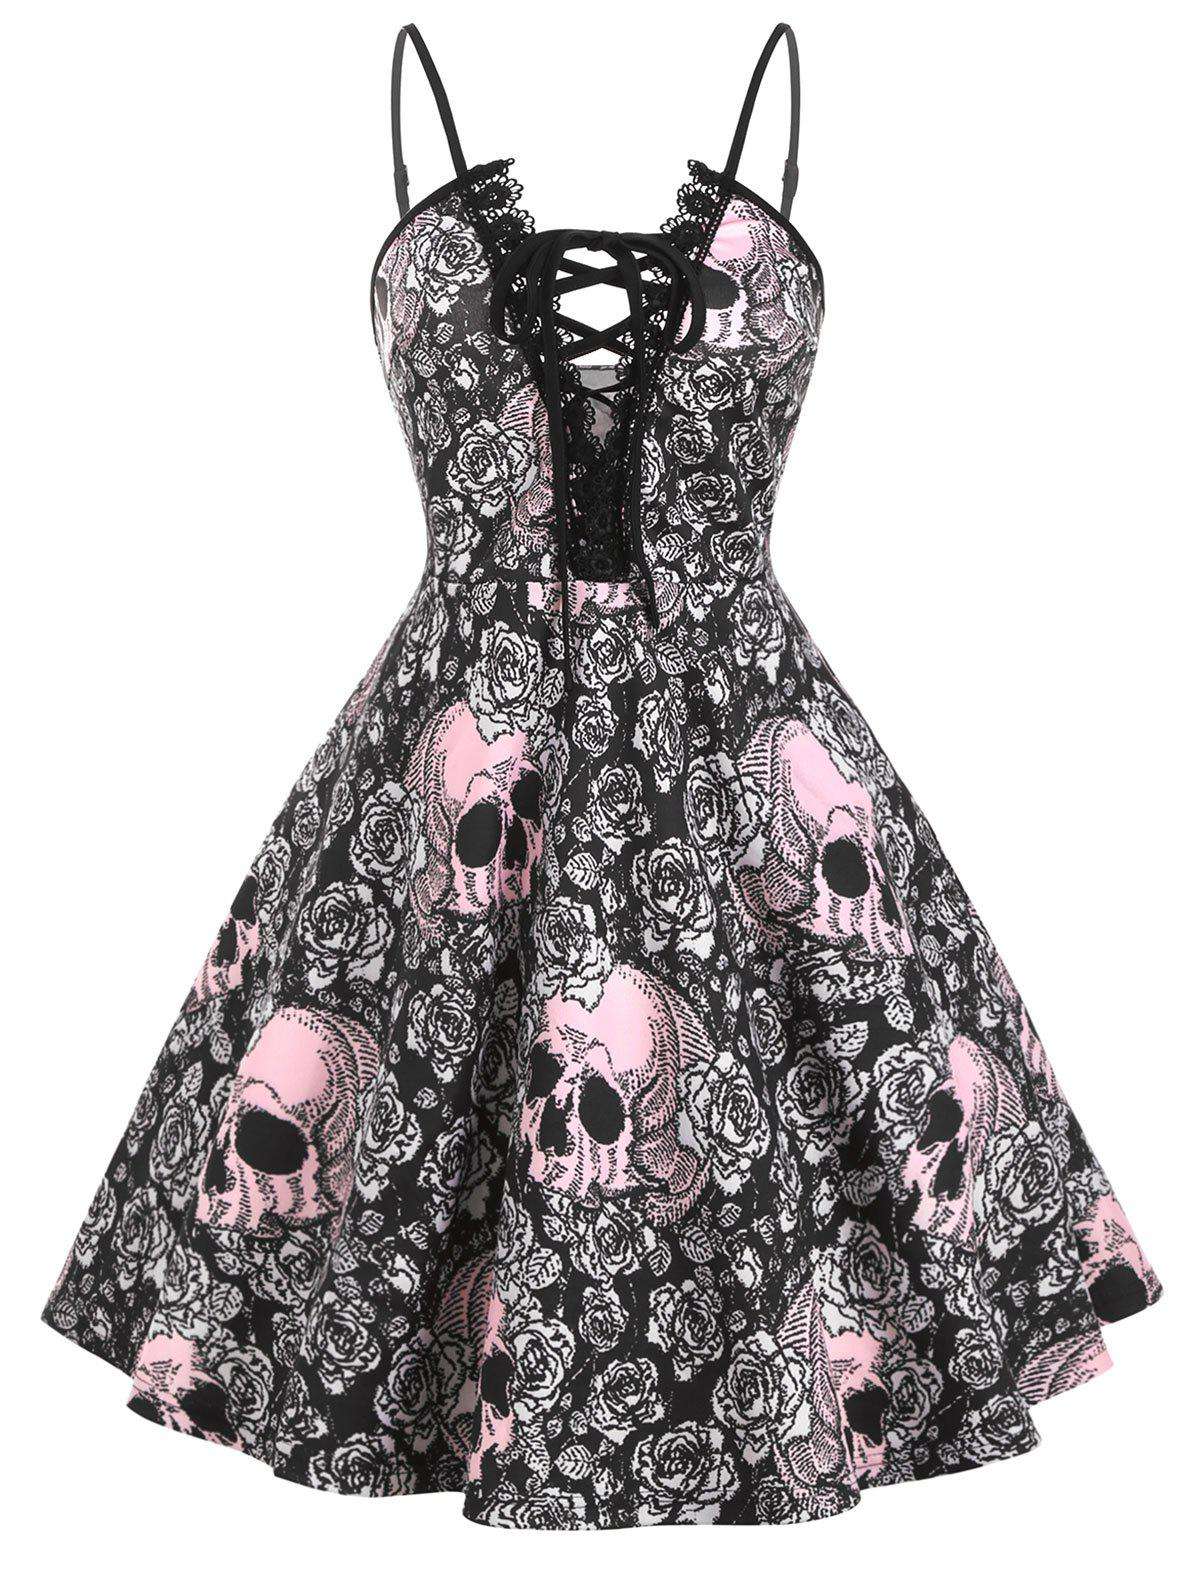 Fashion Lace Trim Halloween Skull Print Lace Up Plus Size Dress